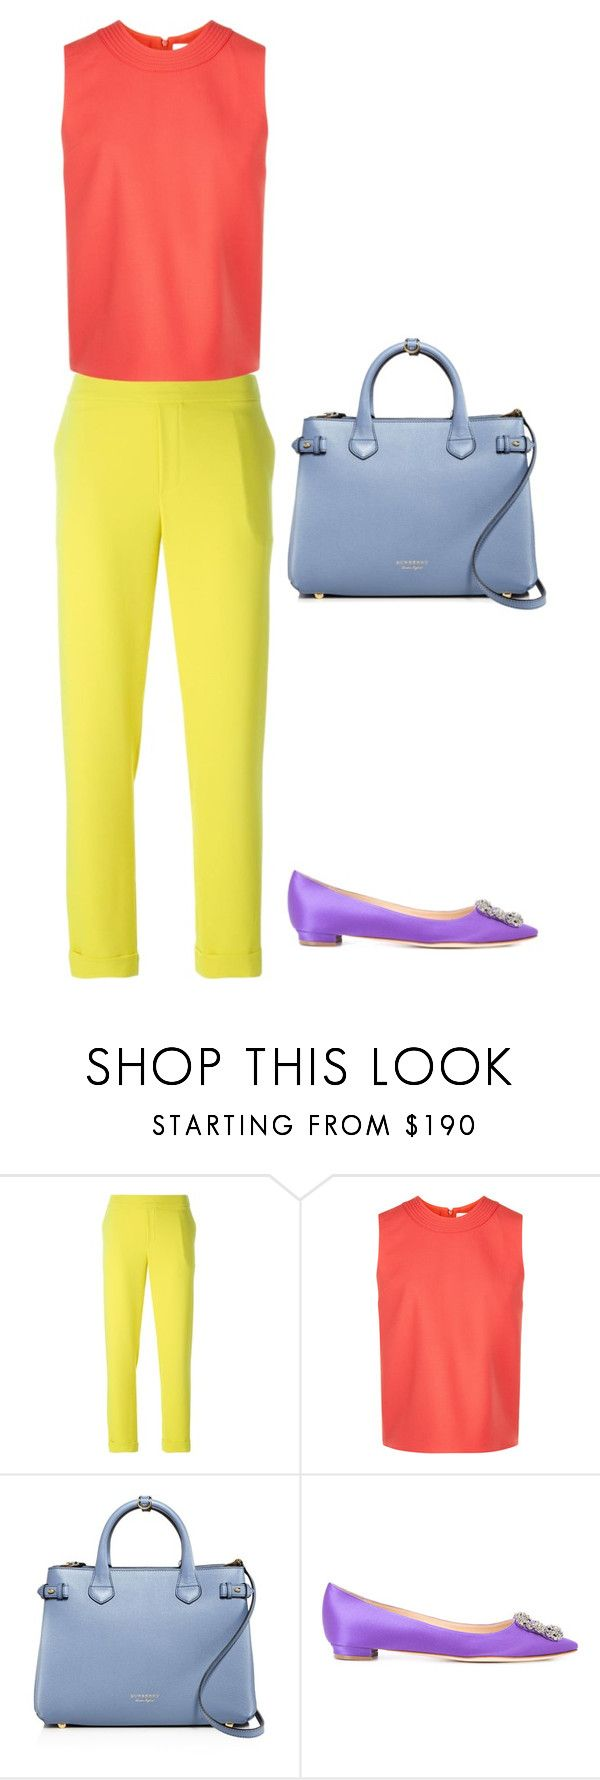 """""""5"""" by asvetik on Polyvore featuring мода, P.A.R.O.S.H., Victoria, Victoria Beckham, Burberry и Manolo Blahnik"""